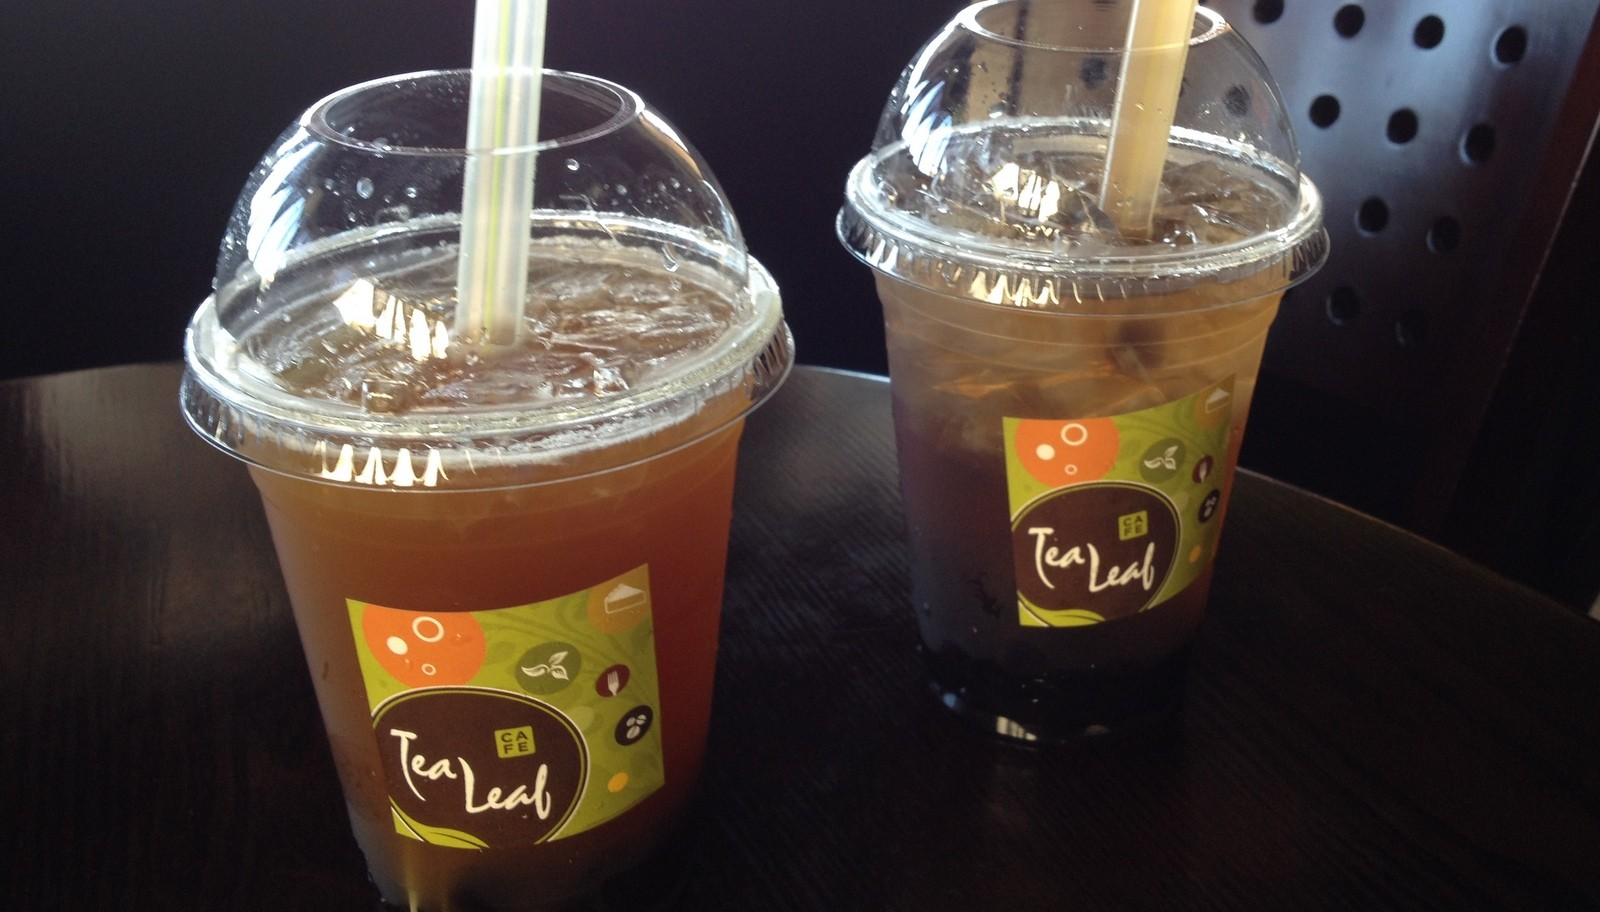 Bubble tea, with optional tapioca 'pearls,' comes in 50 or more varieties at Tea Leaf Cafe. (Andrew Galarneau/Buffalo News)